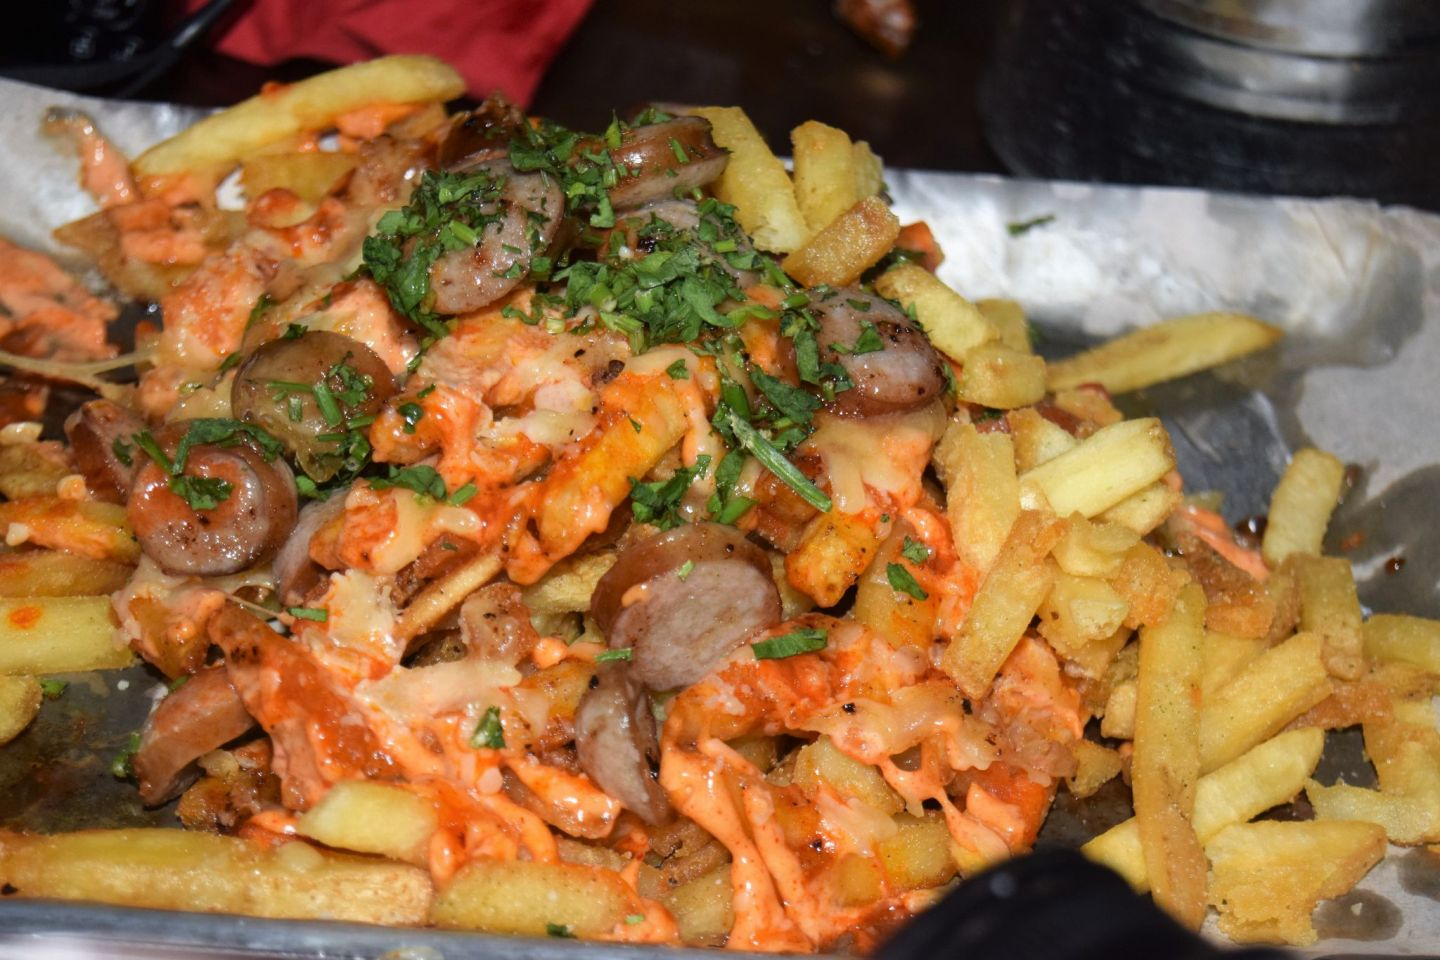 hot dog fries with the burgers at Meat Stack